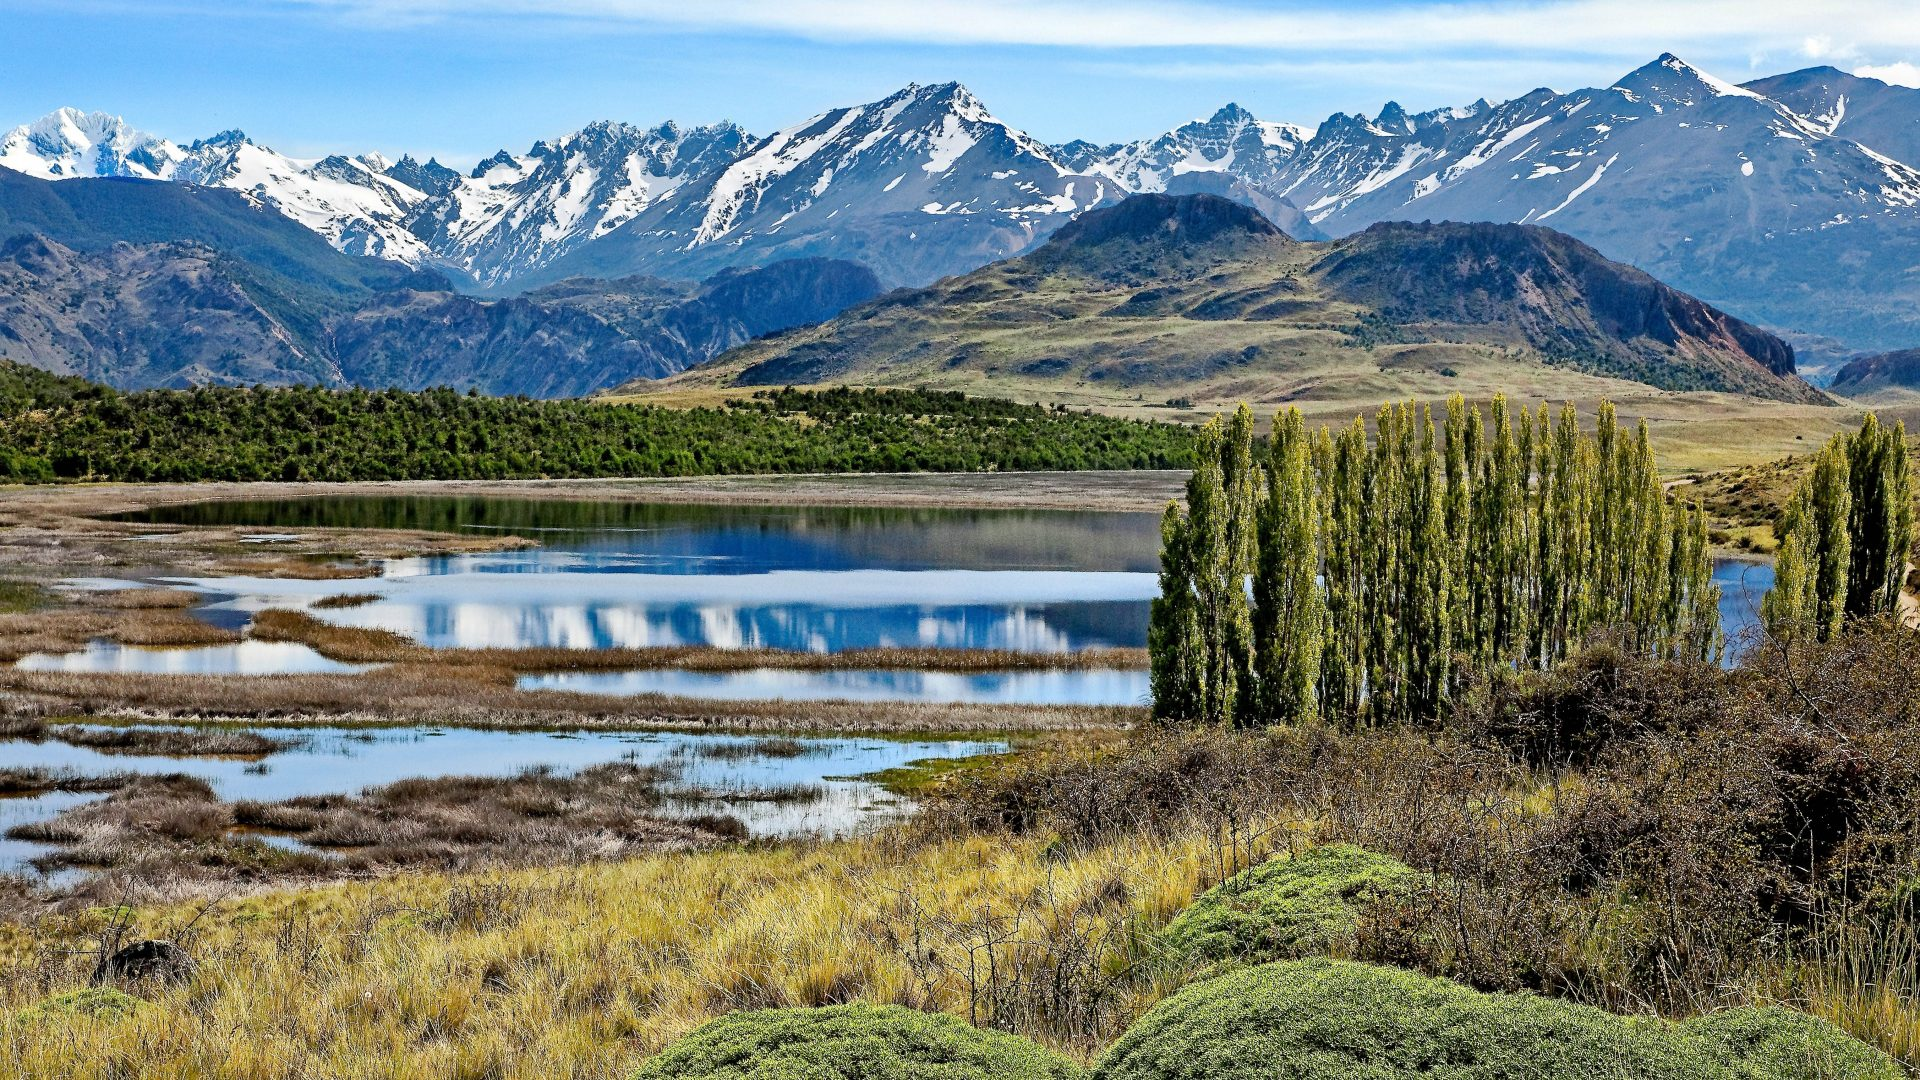 The remote Aysen region of Chile, Patagonia